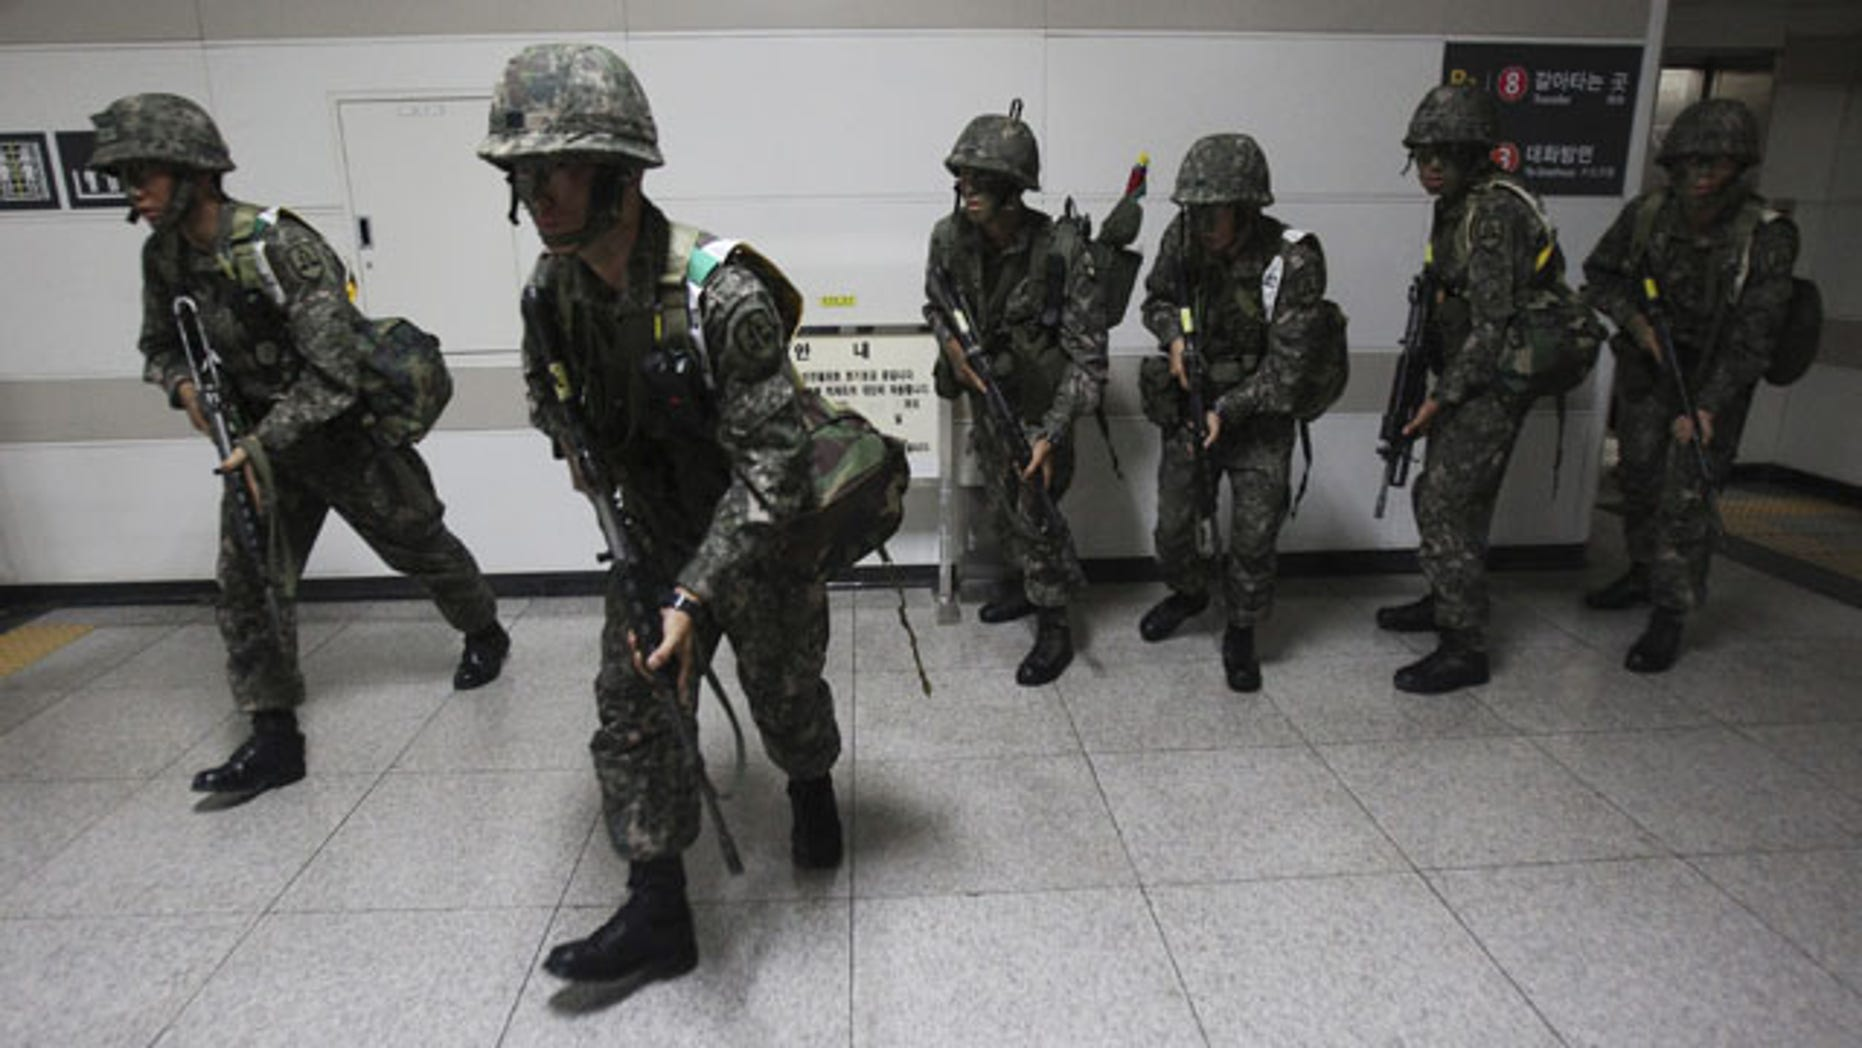 """August 19, 2013: South Korean army soldiers take part in South Korea-U.S. joint military exercise, """"Ulchi Focus Lens,"""" at a subway station in Seoul. (AP Photo)"""